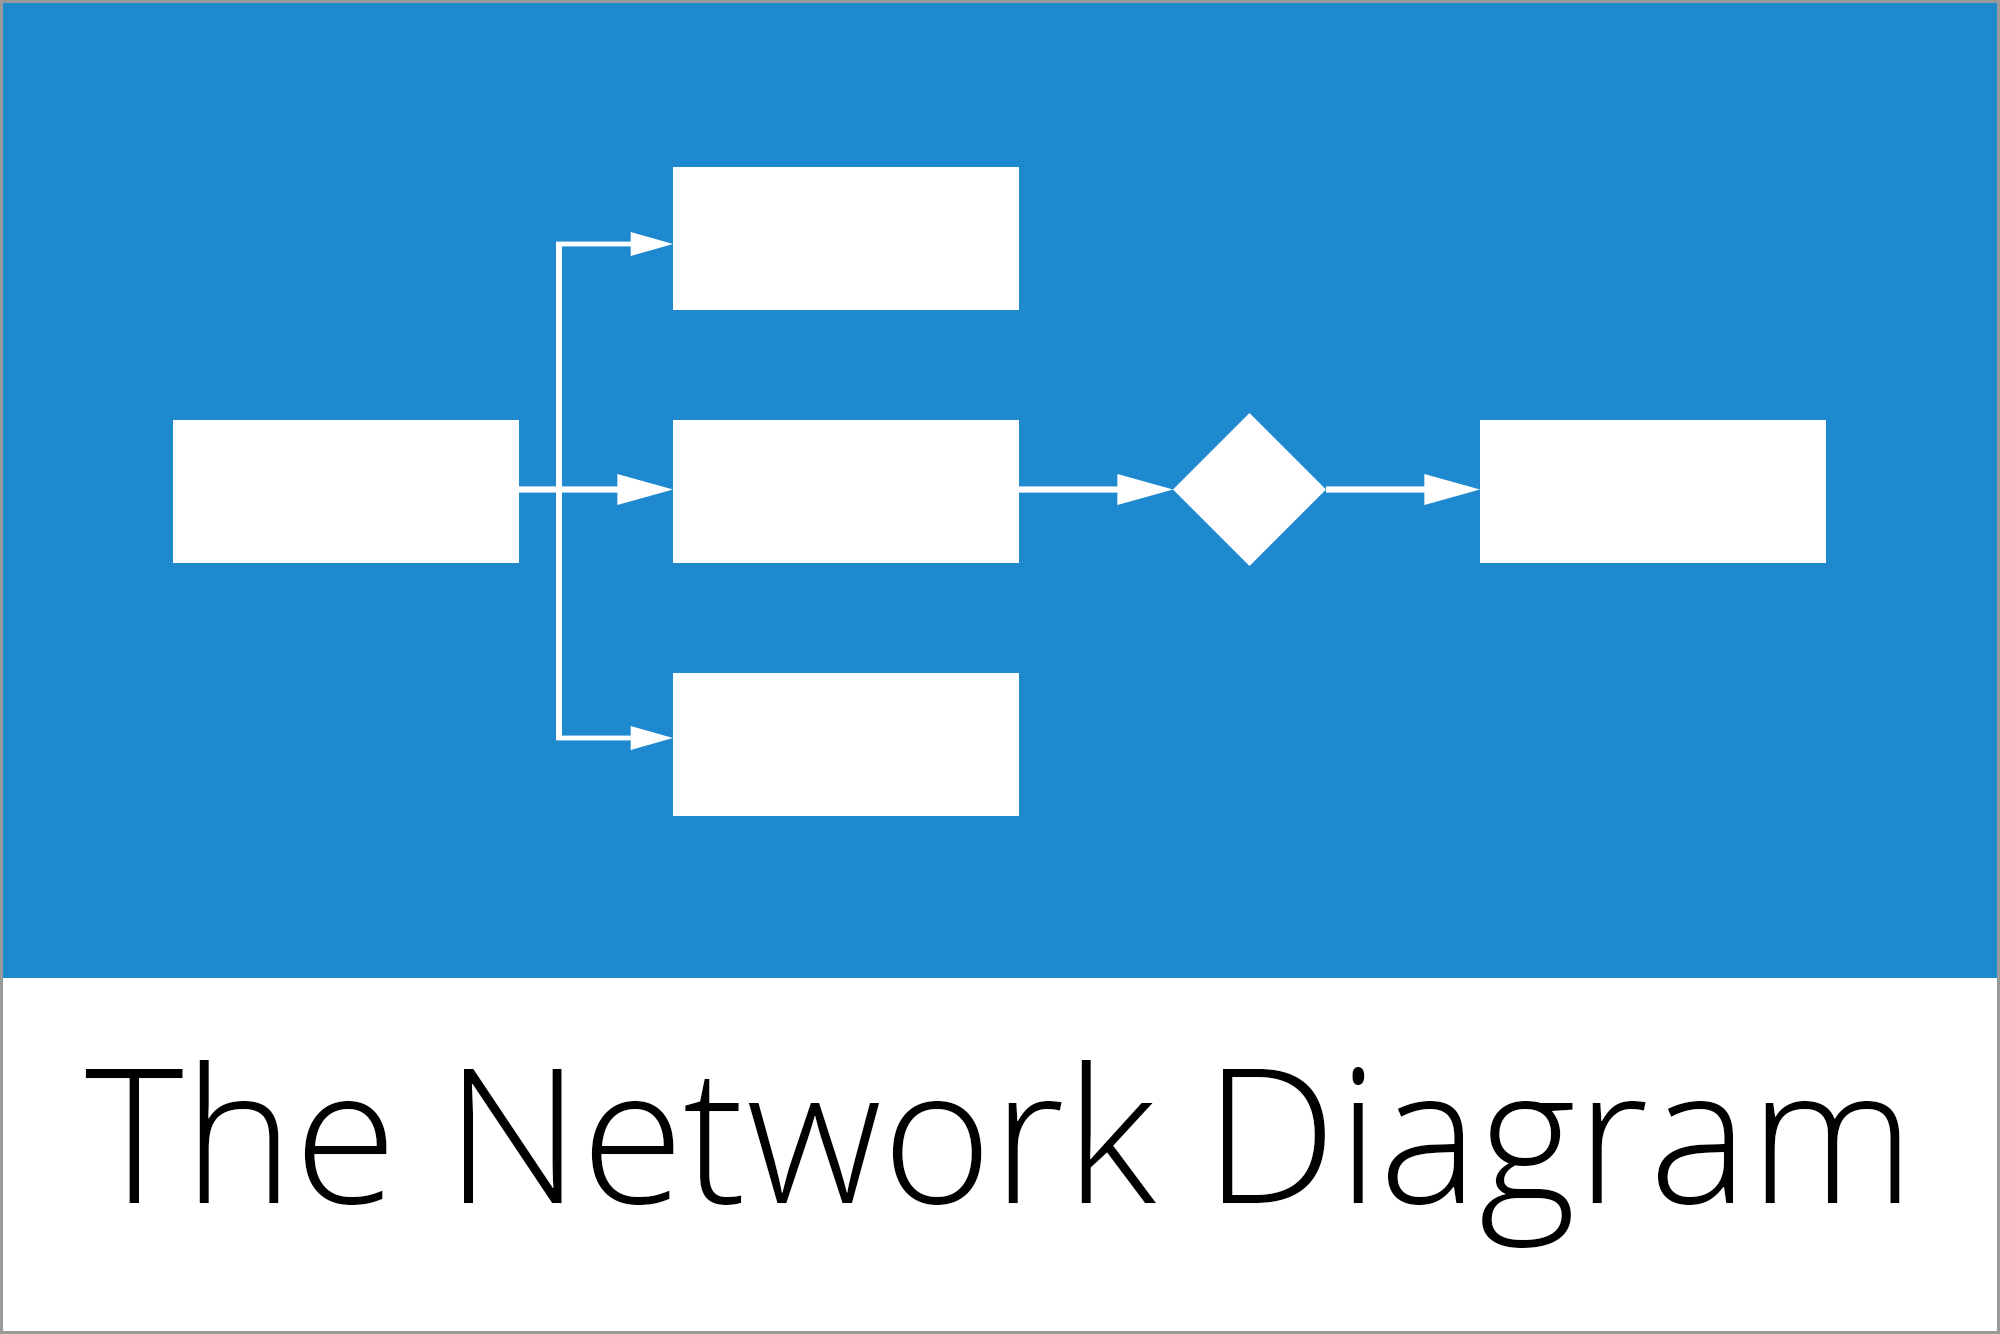 Back to Basics (11): What is a network diagram and how does a network diagram analysis work?